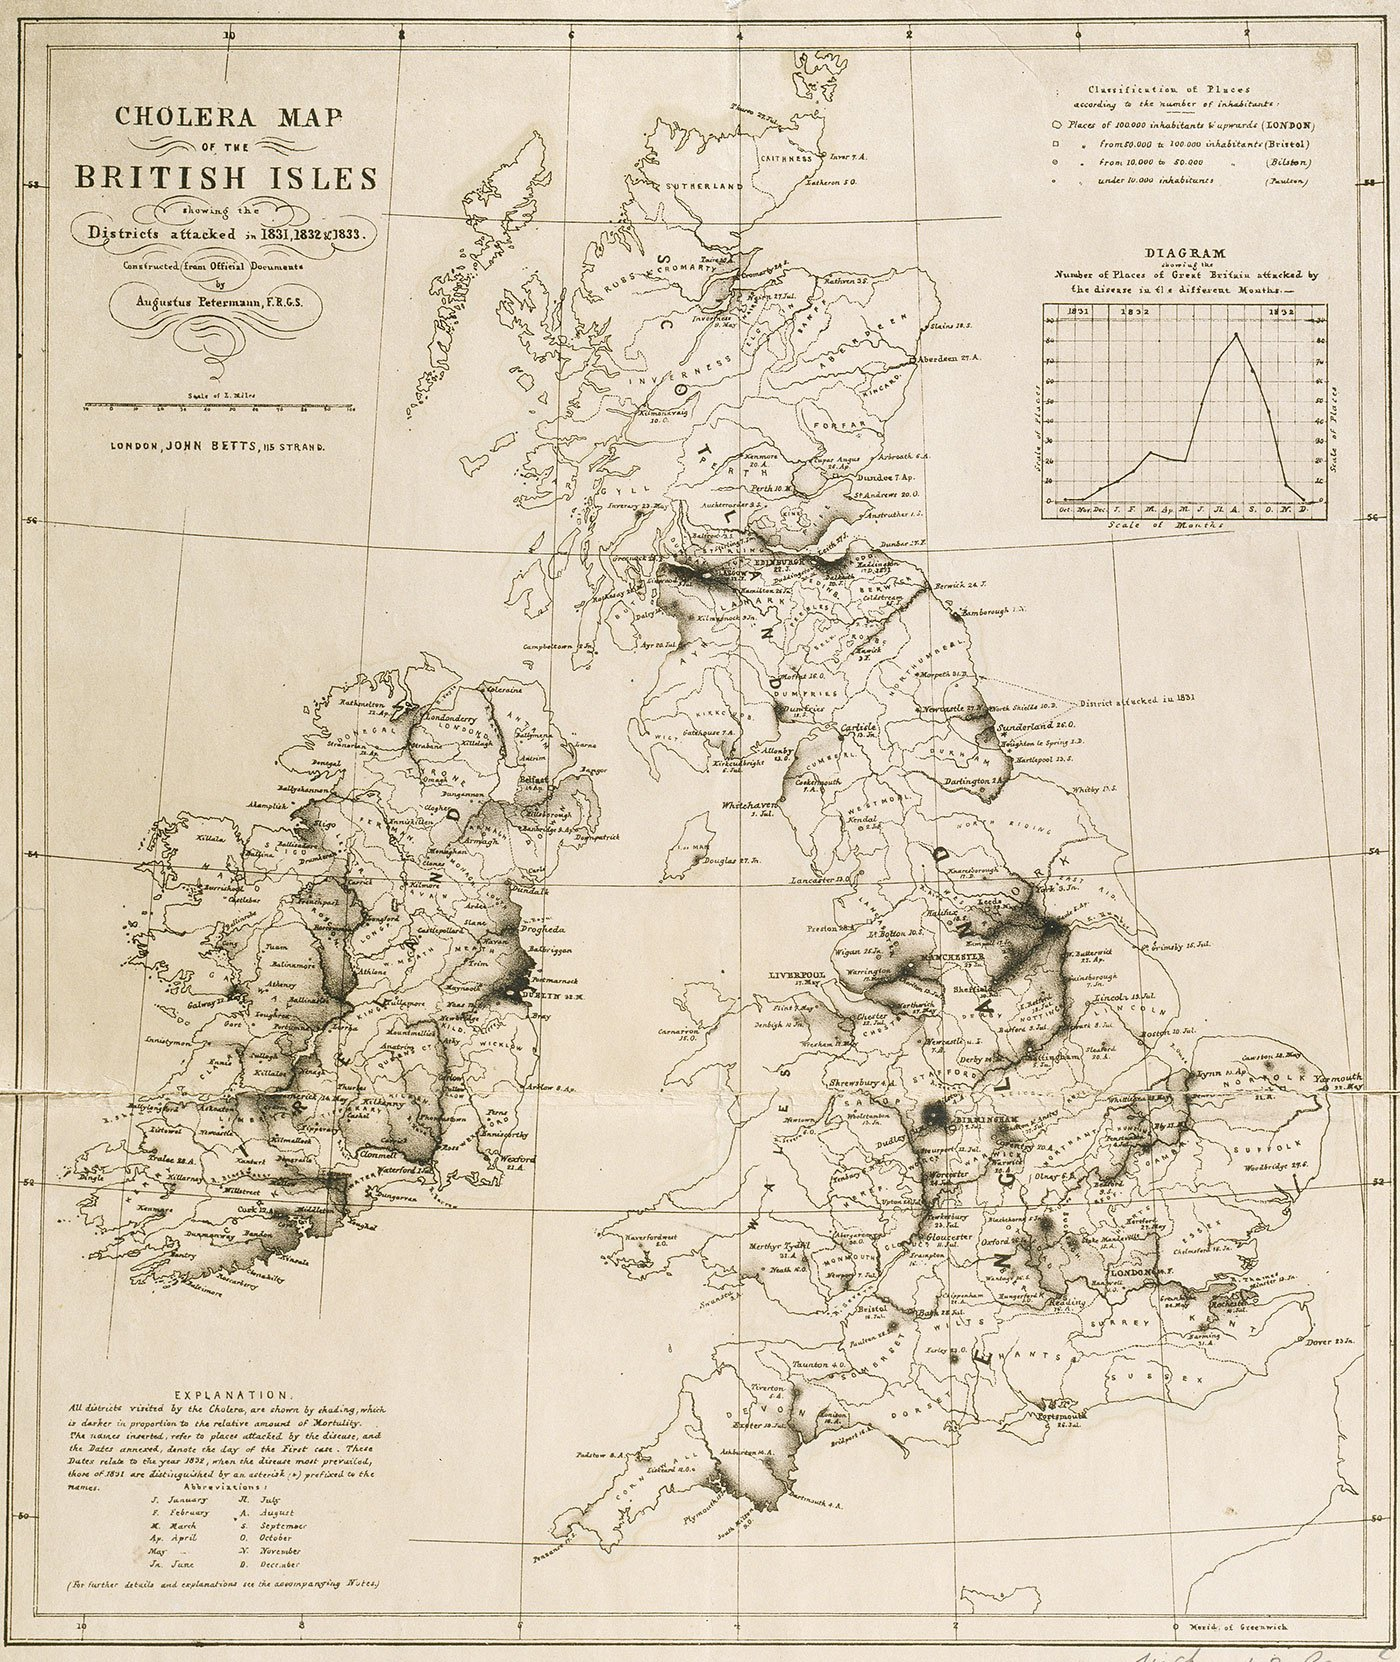 A map of Britain showing cases of Cholera